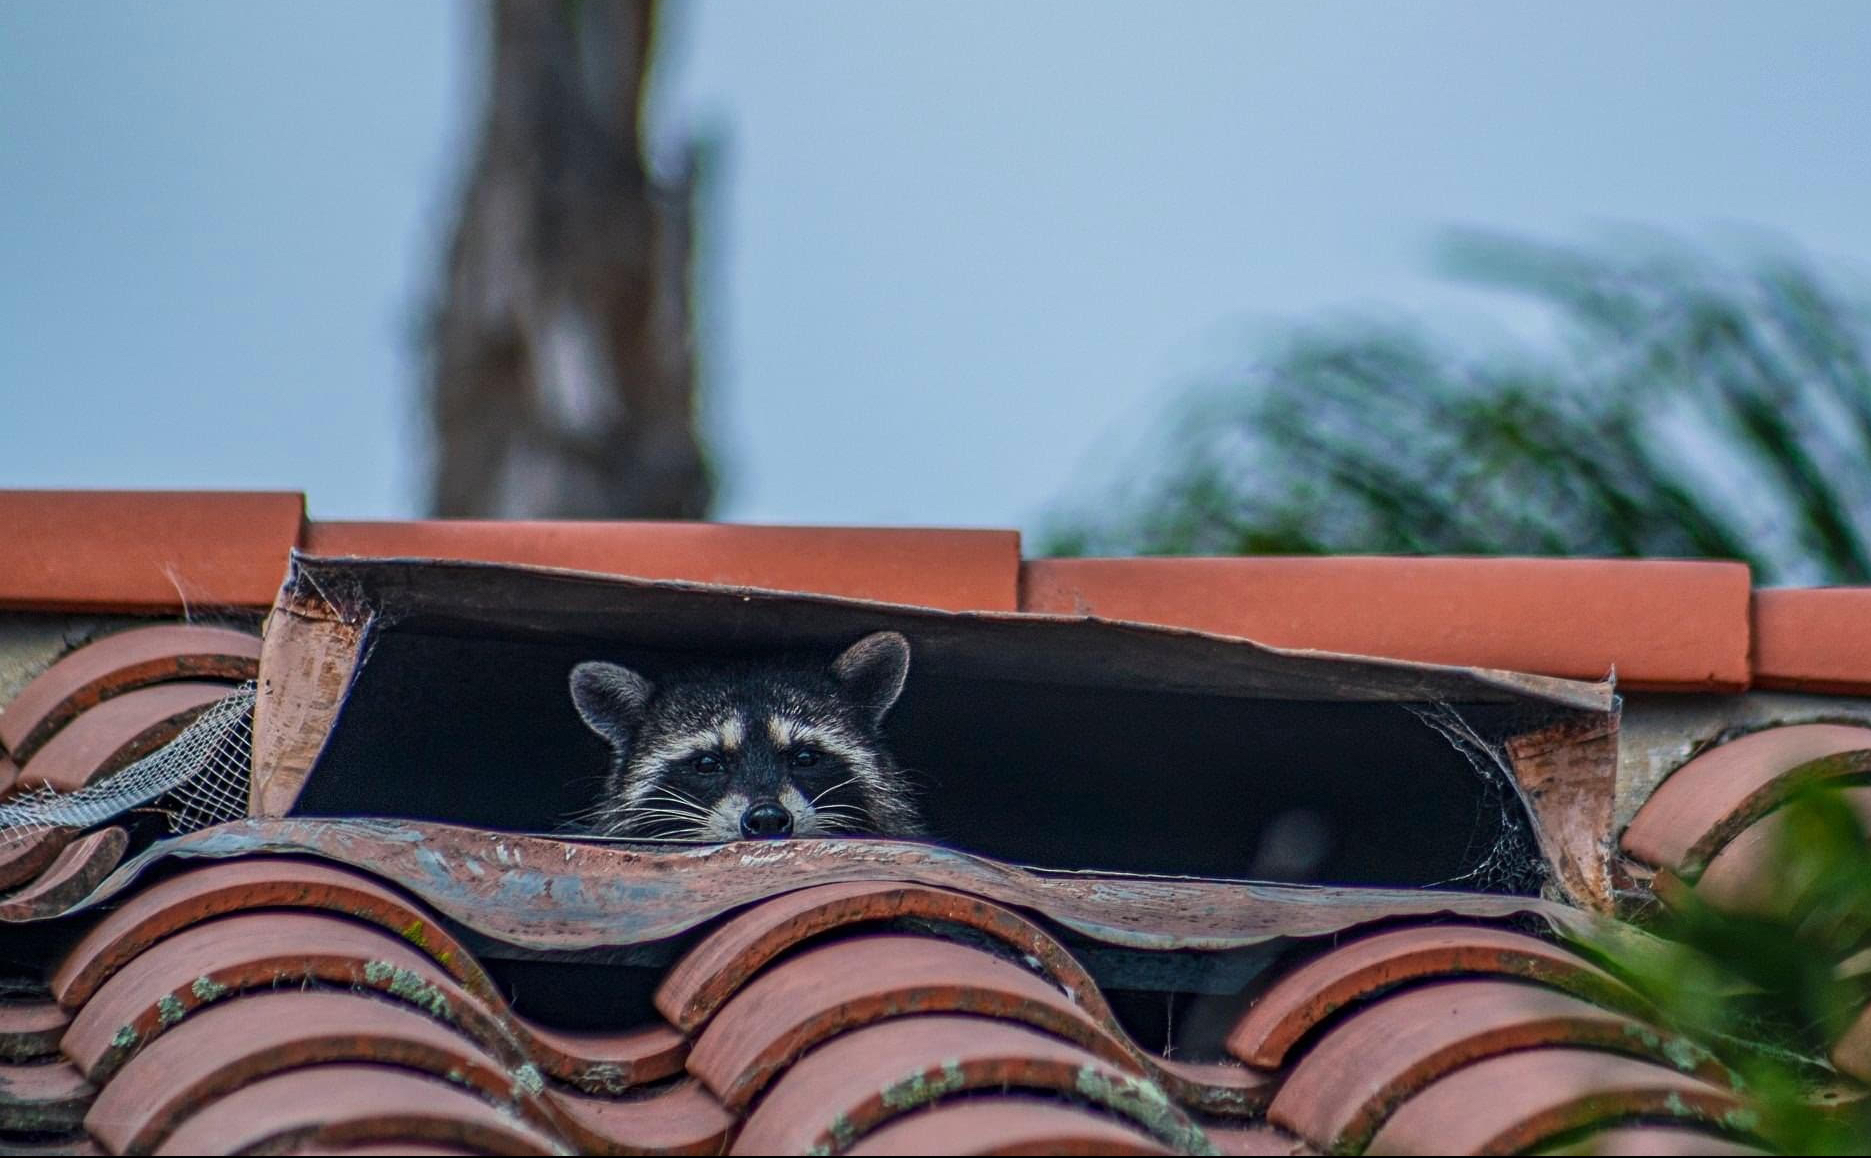 Raccoon peeks out from roof vent.